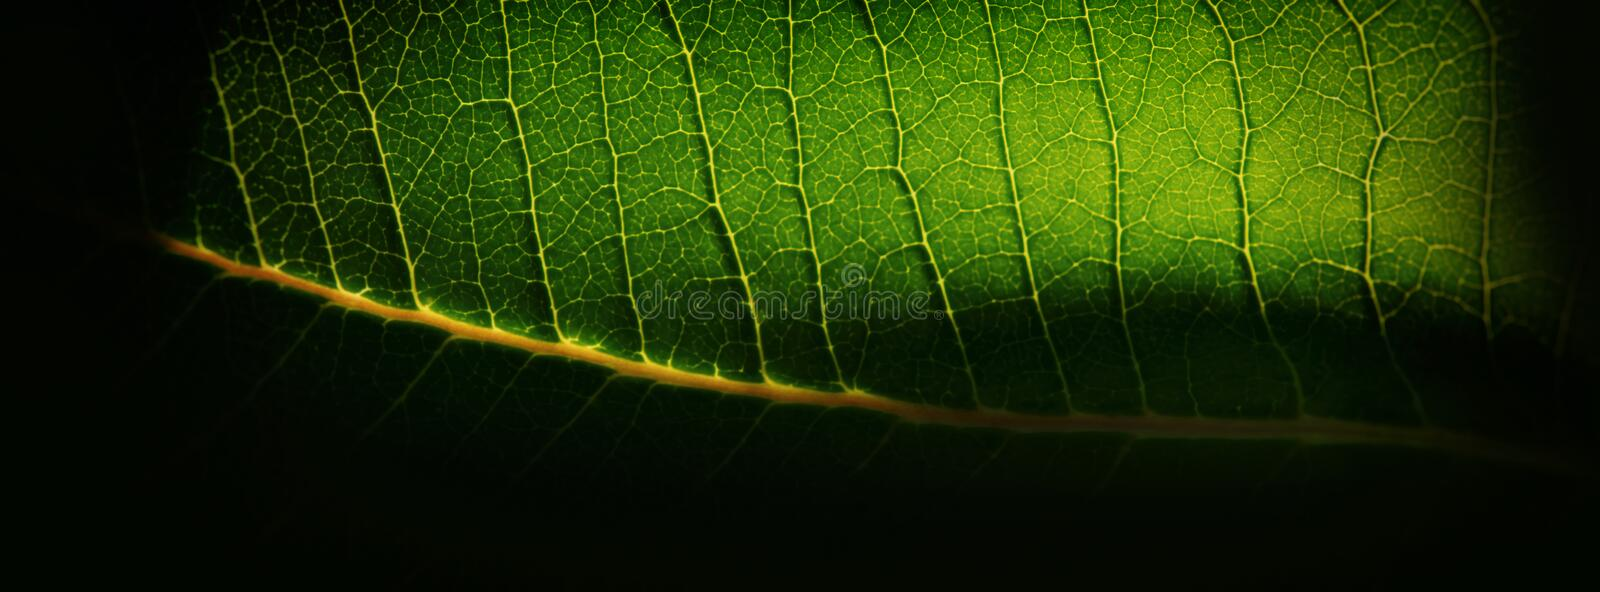 Blurred background, green plant leaf and yellow capillaries. Web royalty free stock photography